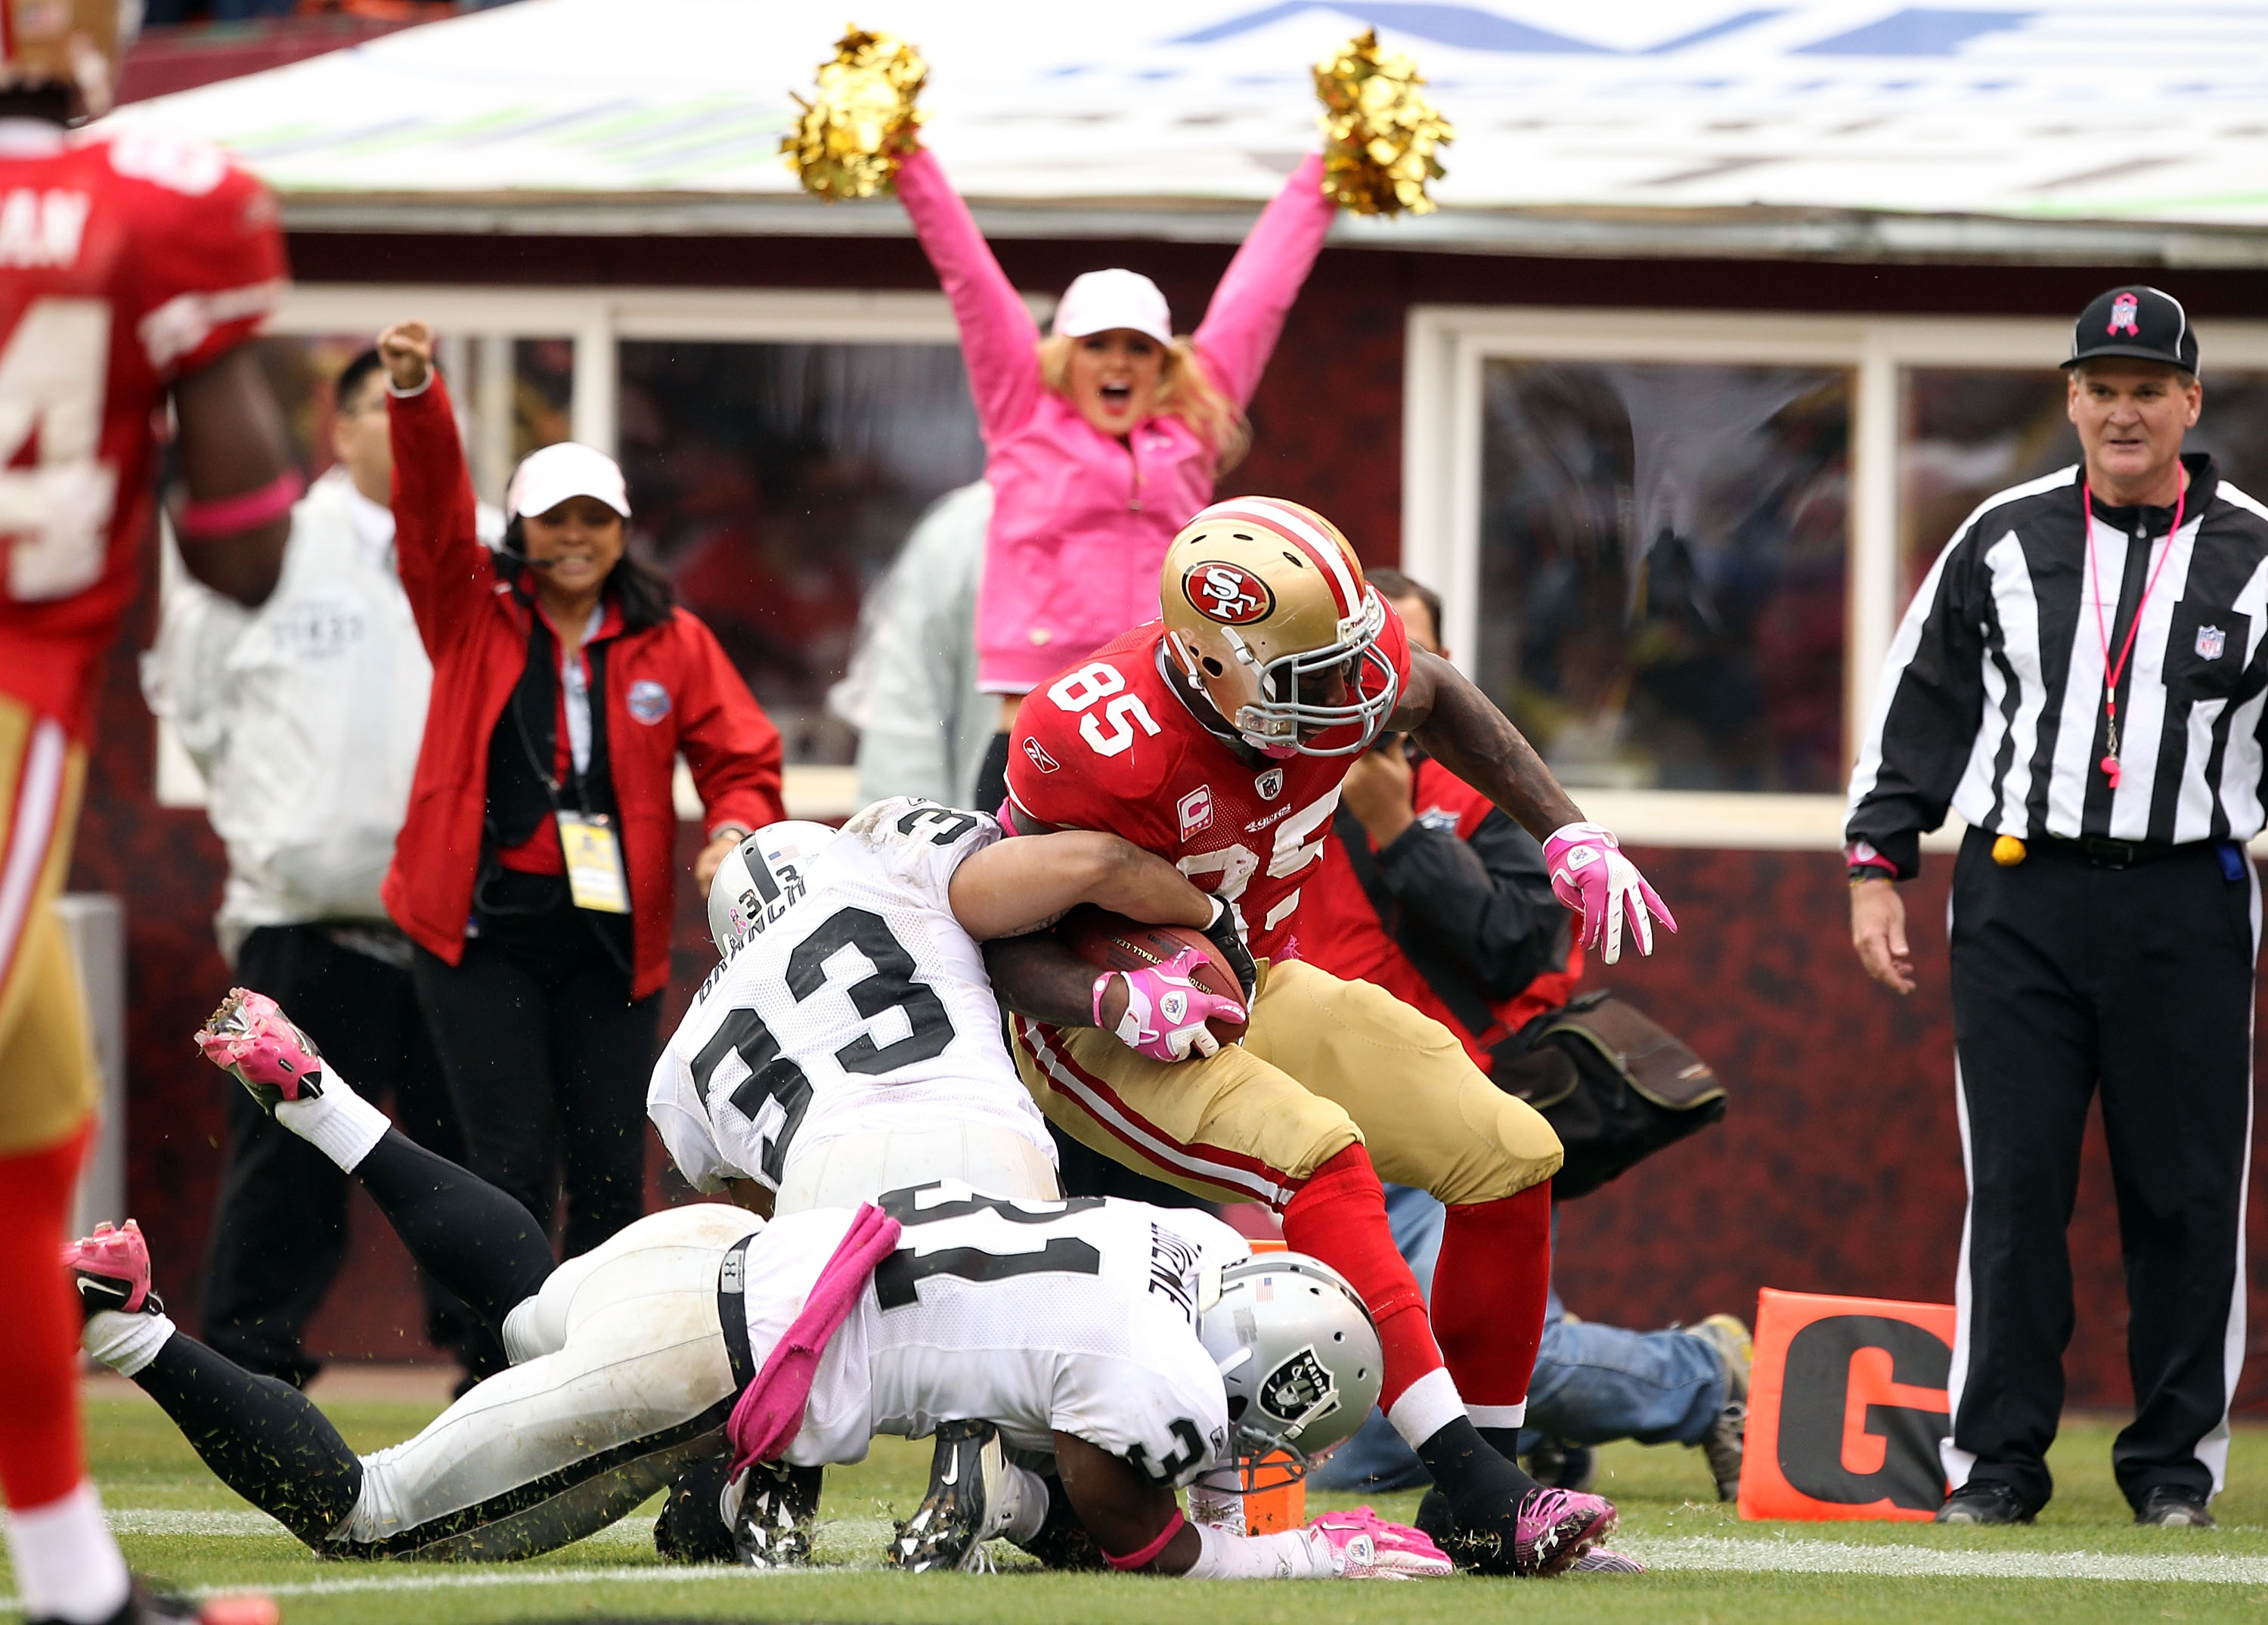 Branch takes down Vernon Davis at the goal line